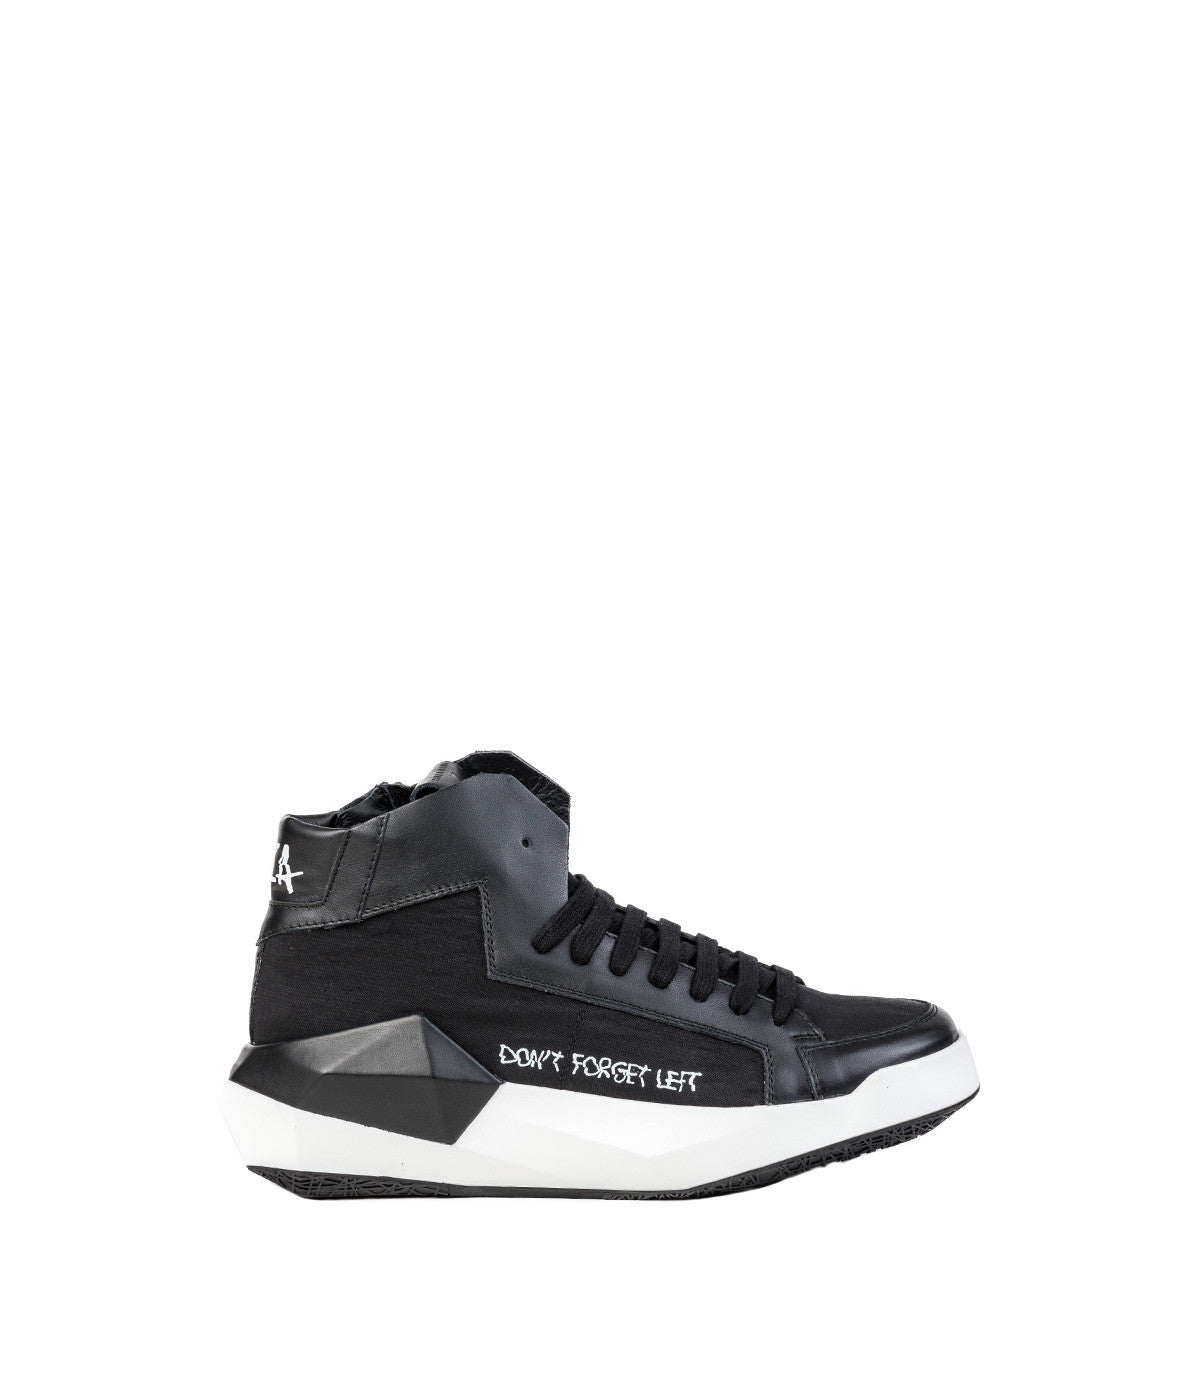 Black Geometrical High-Top Sneakers